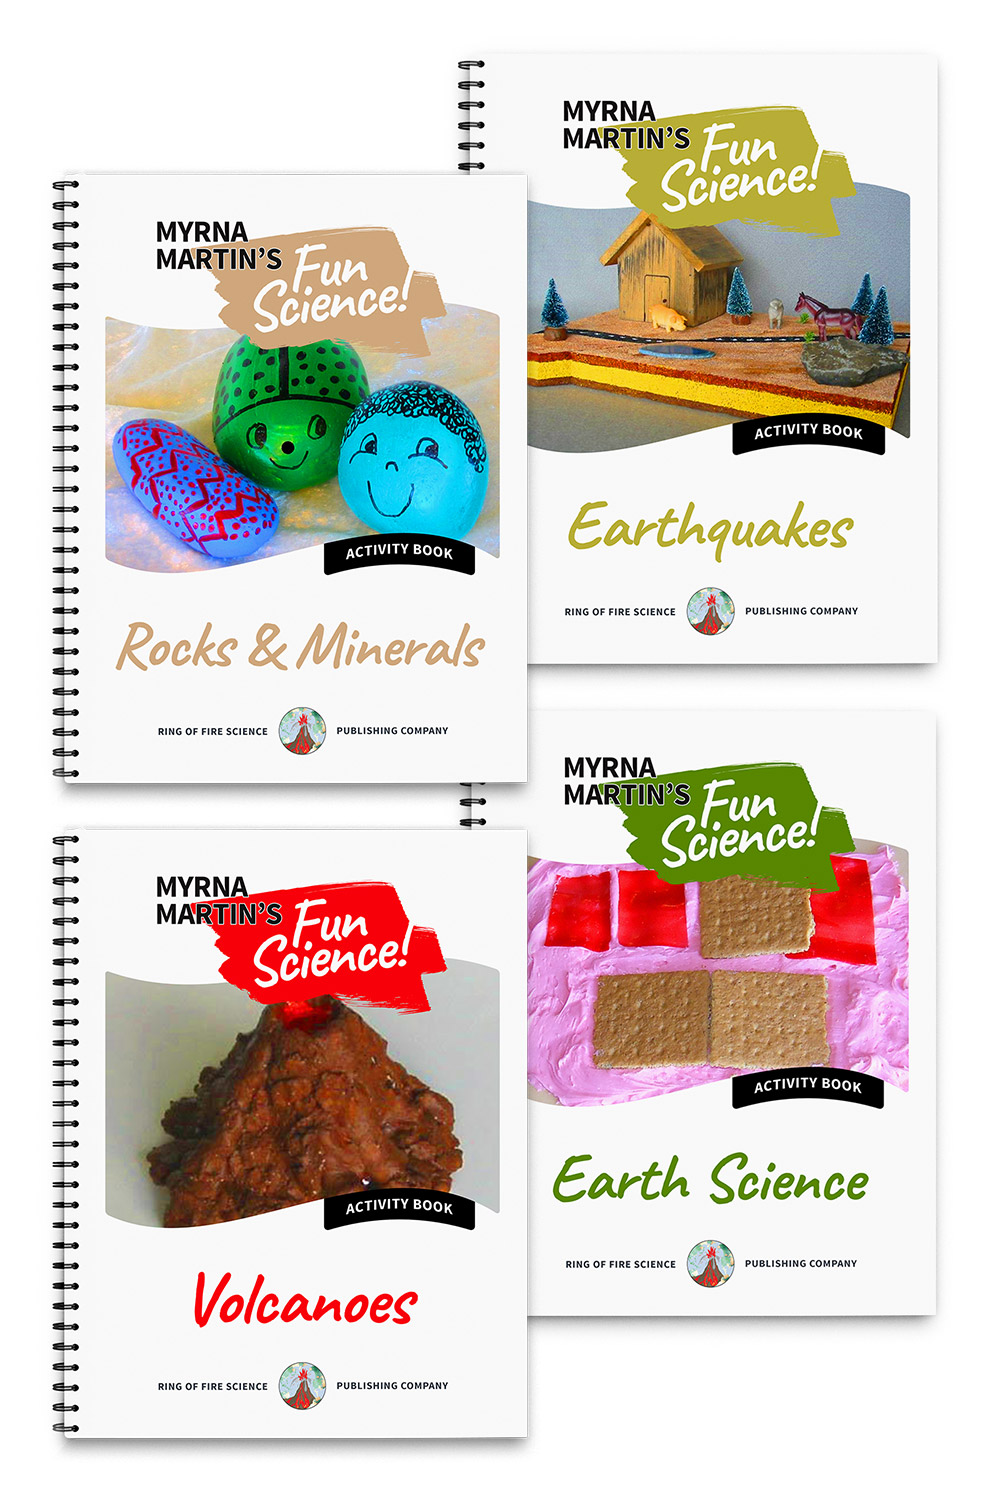 Fun Science Activity Books Package by Myrna Martin